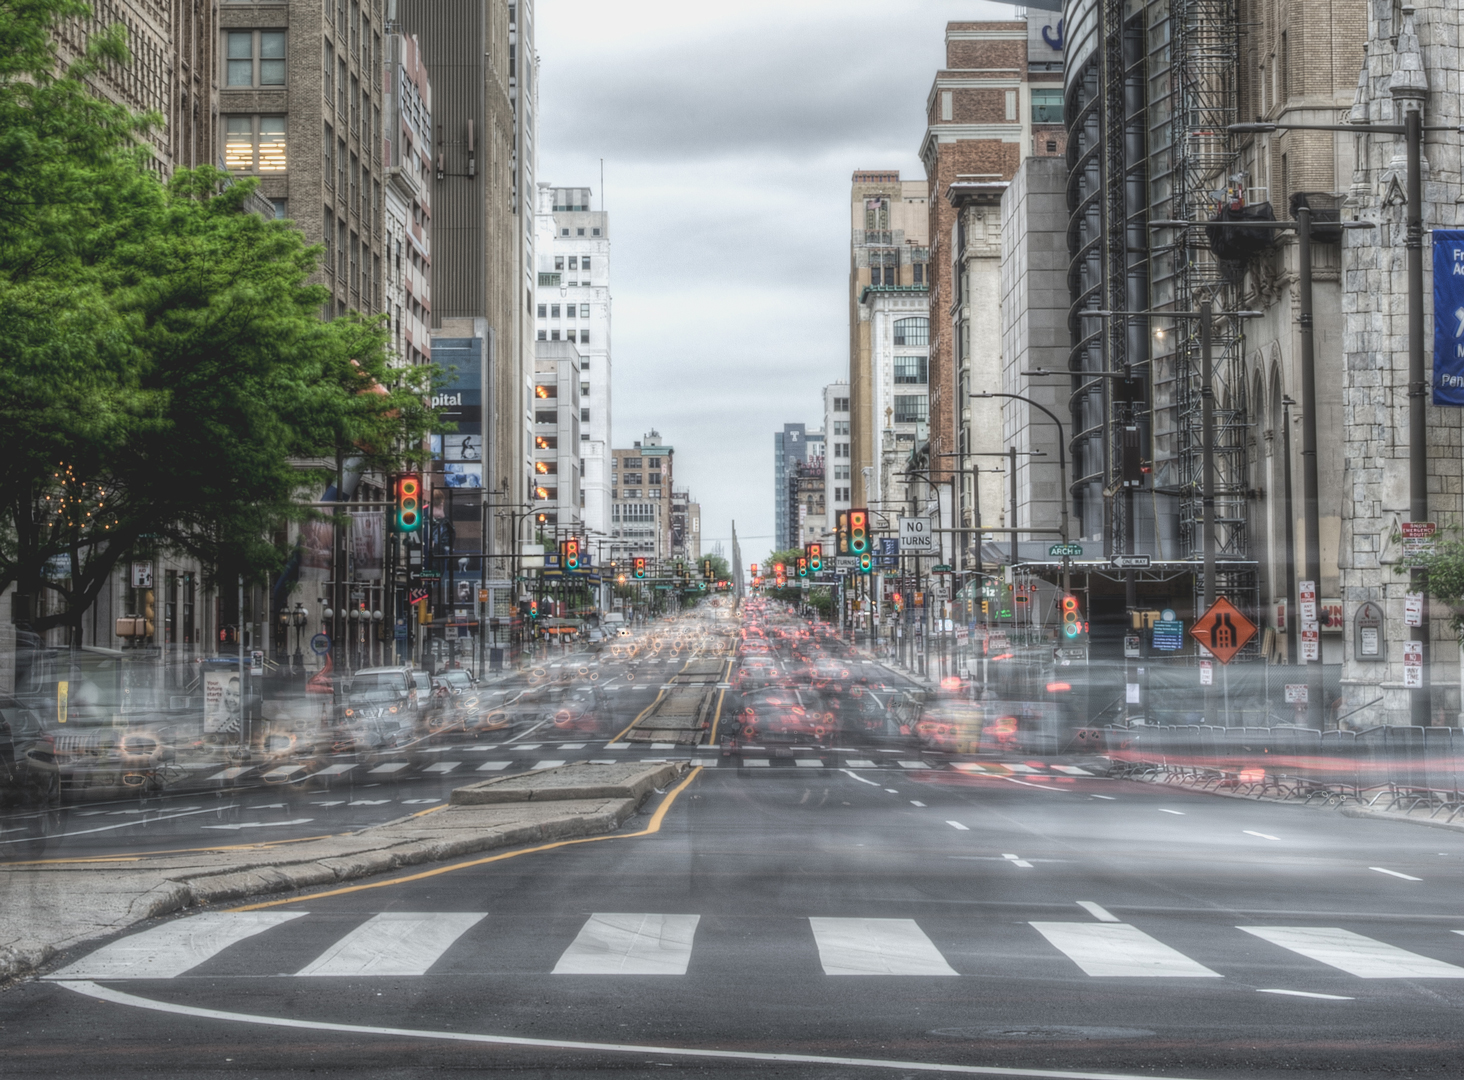 Will human drivers soon be a thing of the past? (Source: unsplash.com)